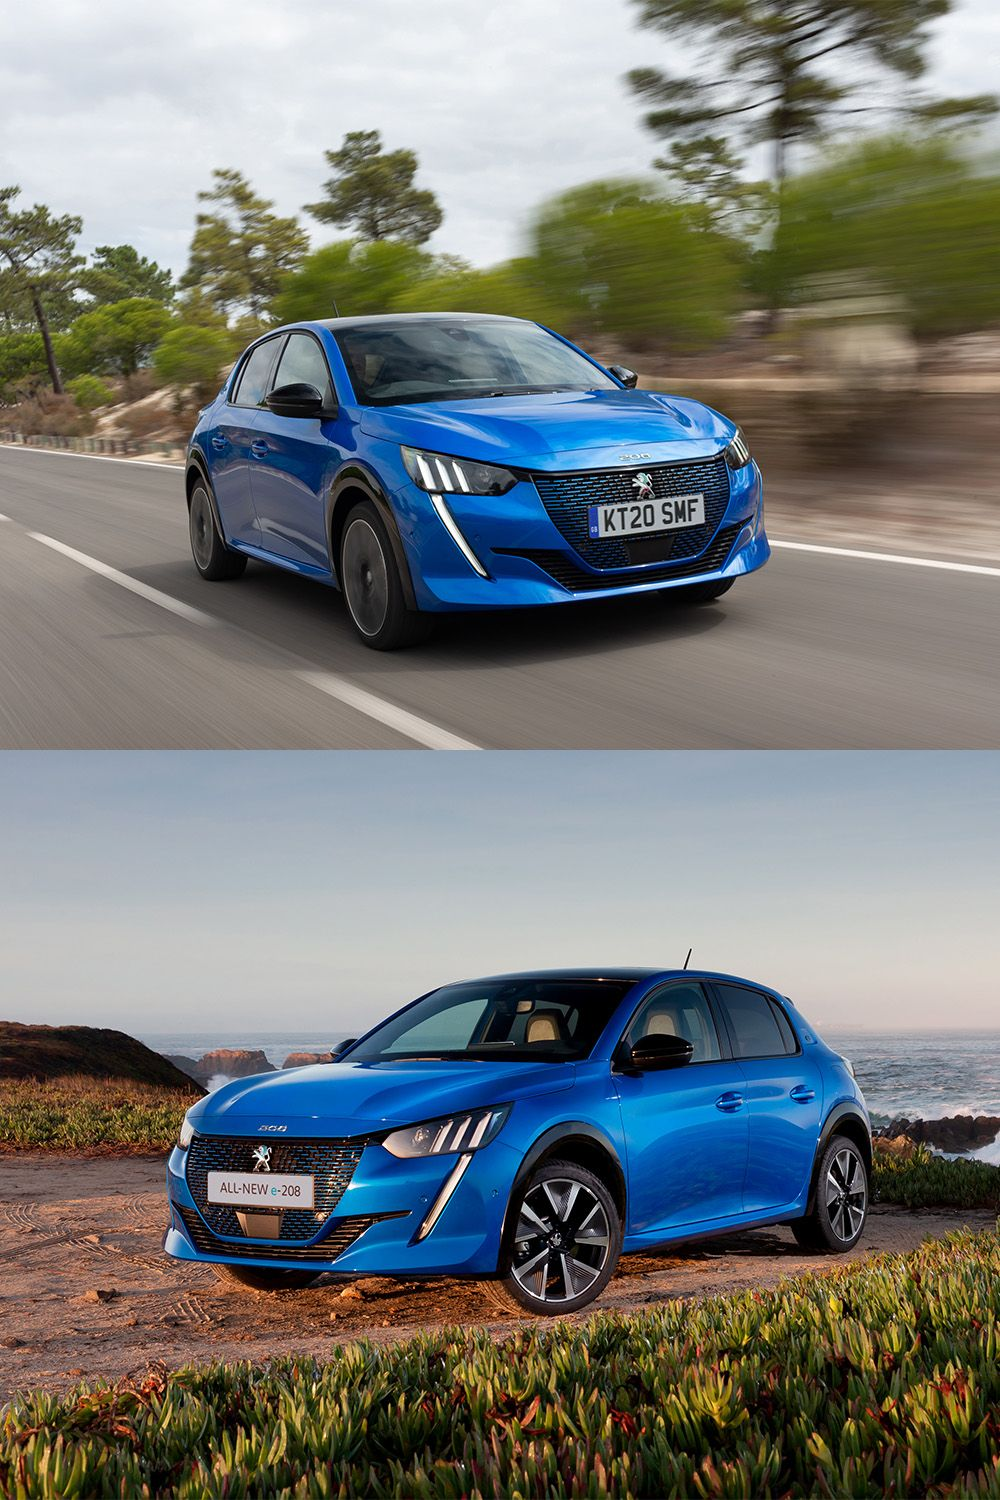 This all-electric version of a city car favourite offers a lively and environmentally-friendly drive. The Peugeot e-208's innovative digital cockpit, 217-mile range and Sports driving mode means that you can make the switch to electric driving without making any compromises. #Hatchback #ElectricCar #Peugeot